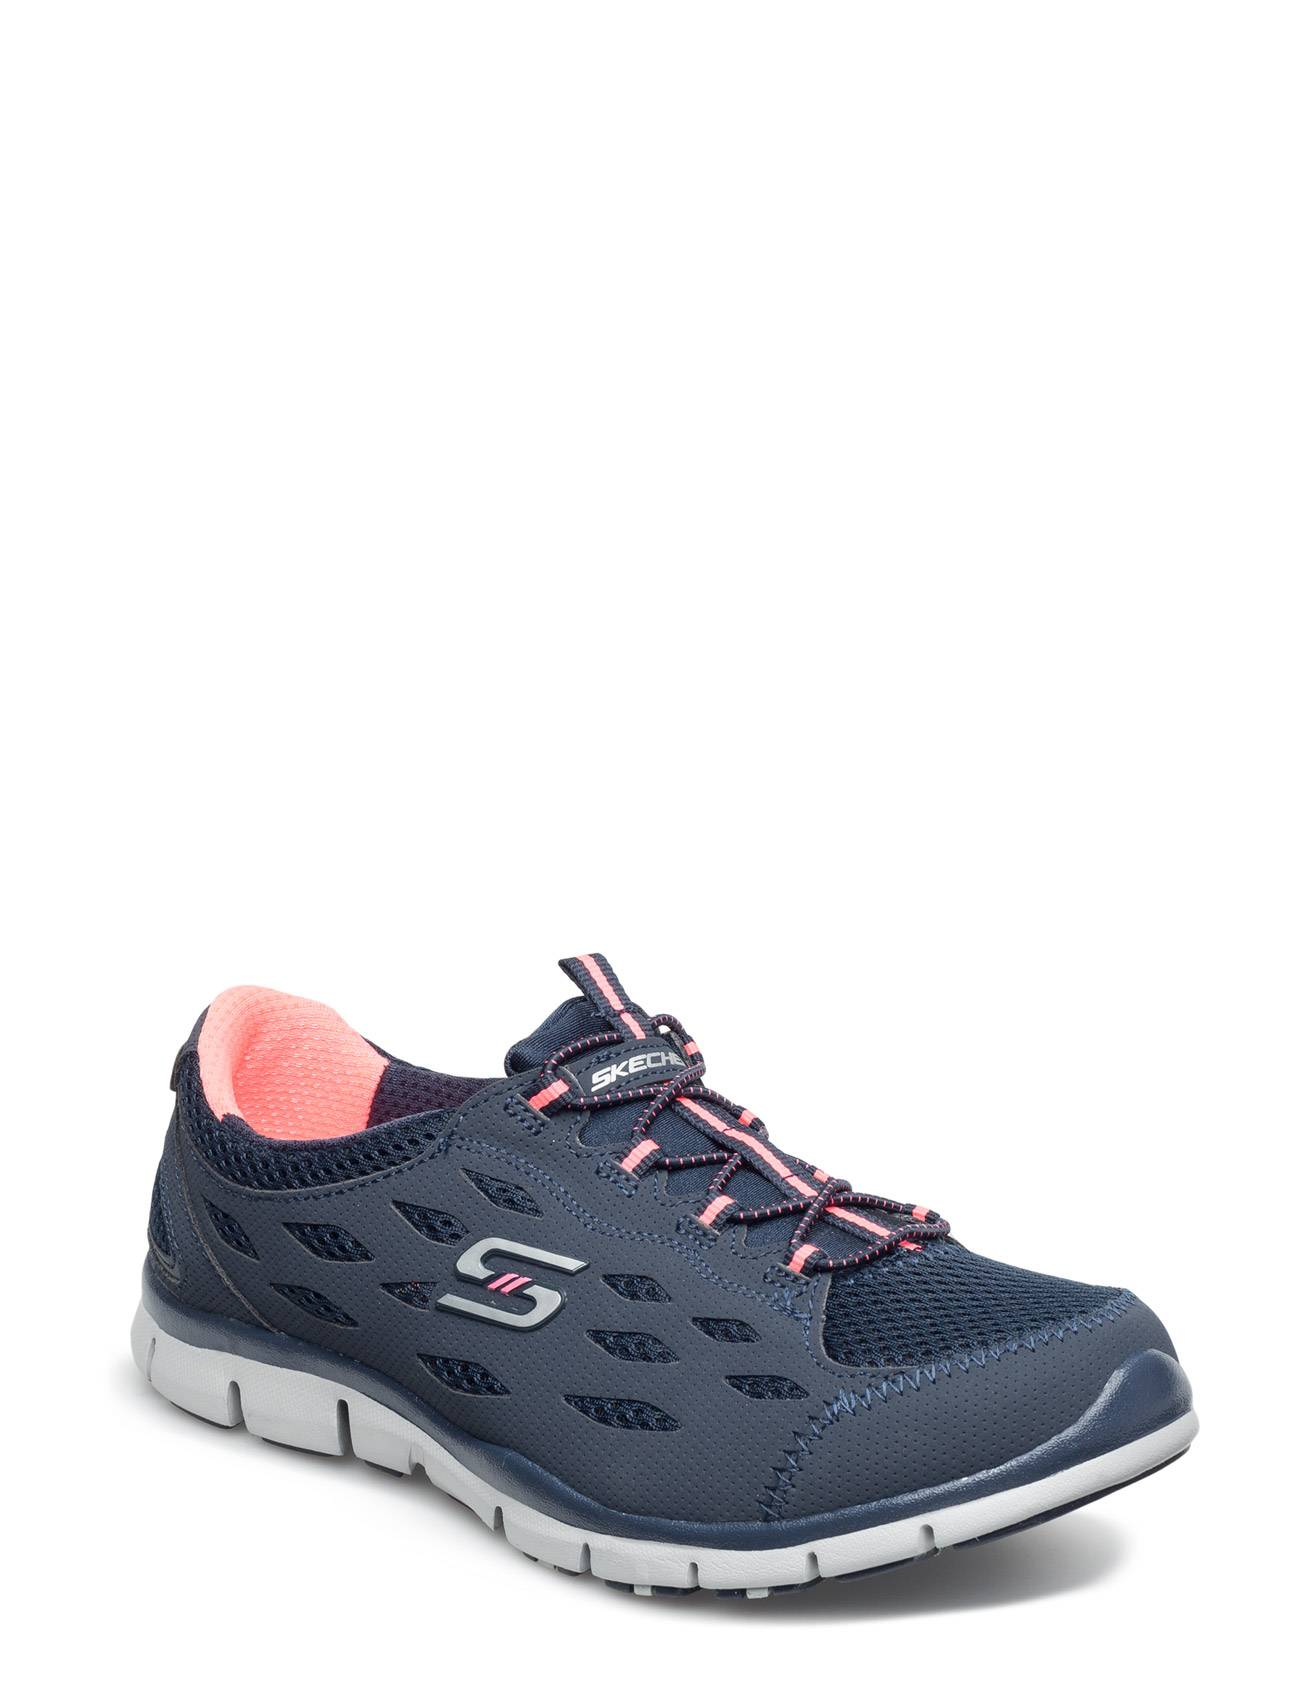 Skechers Womens Gratis -Going Places